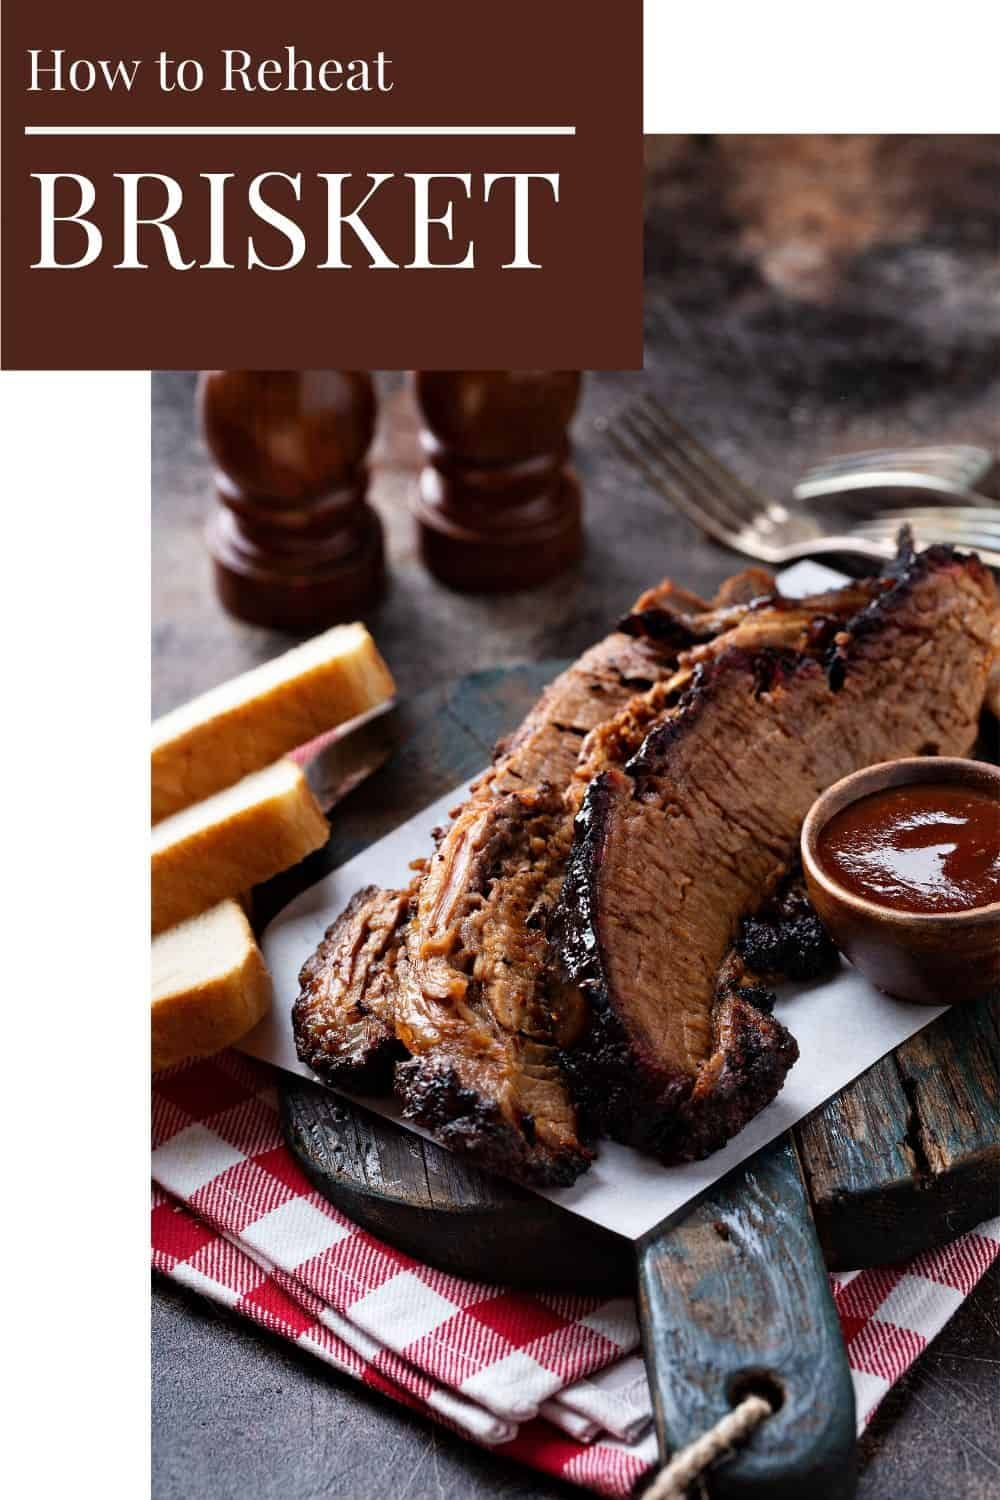 How To Reheat Brisket In 4 Easy Ways Without Drying It Out Recipe Brisket Smoked Brisket Reheating Brisket